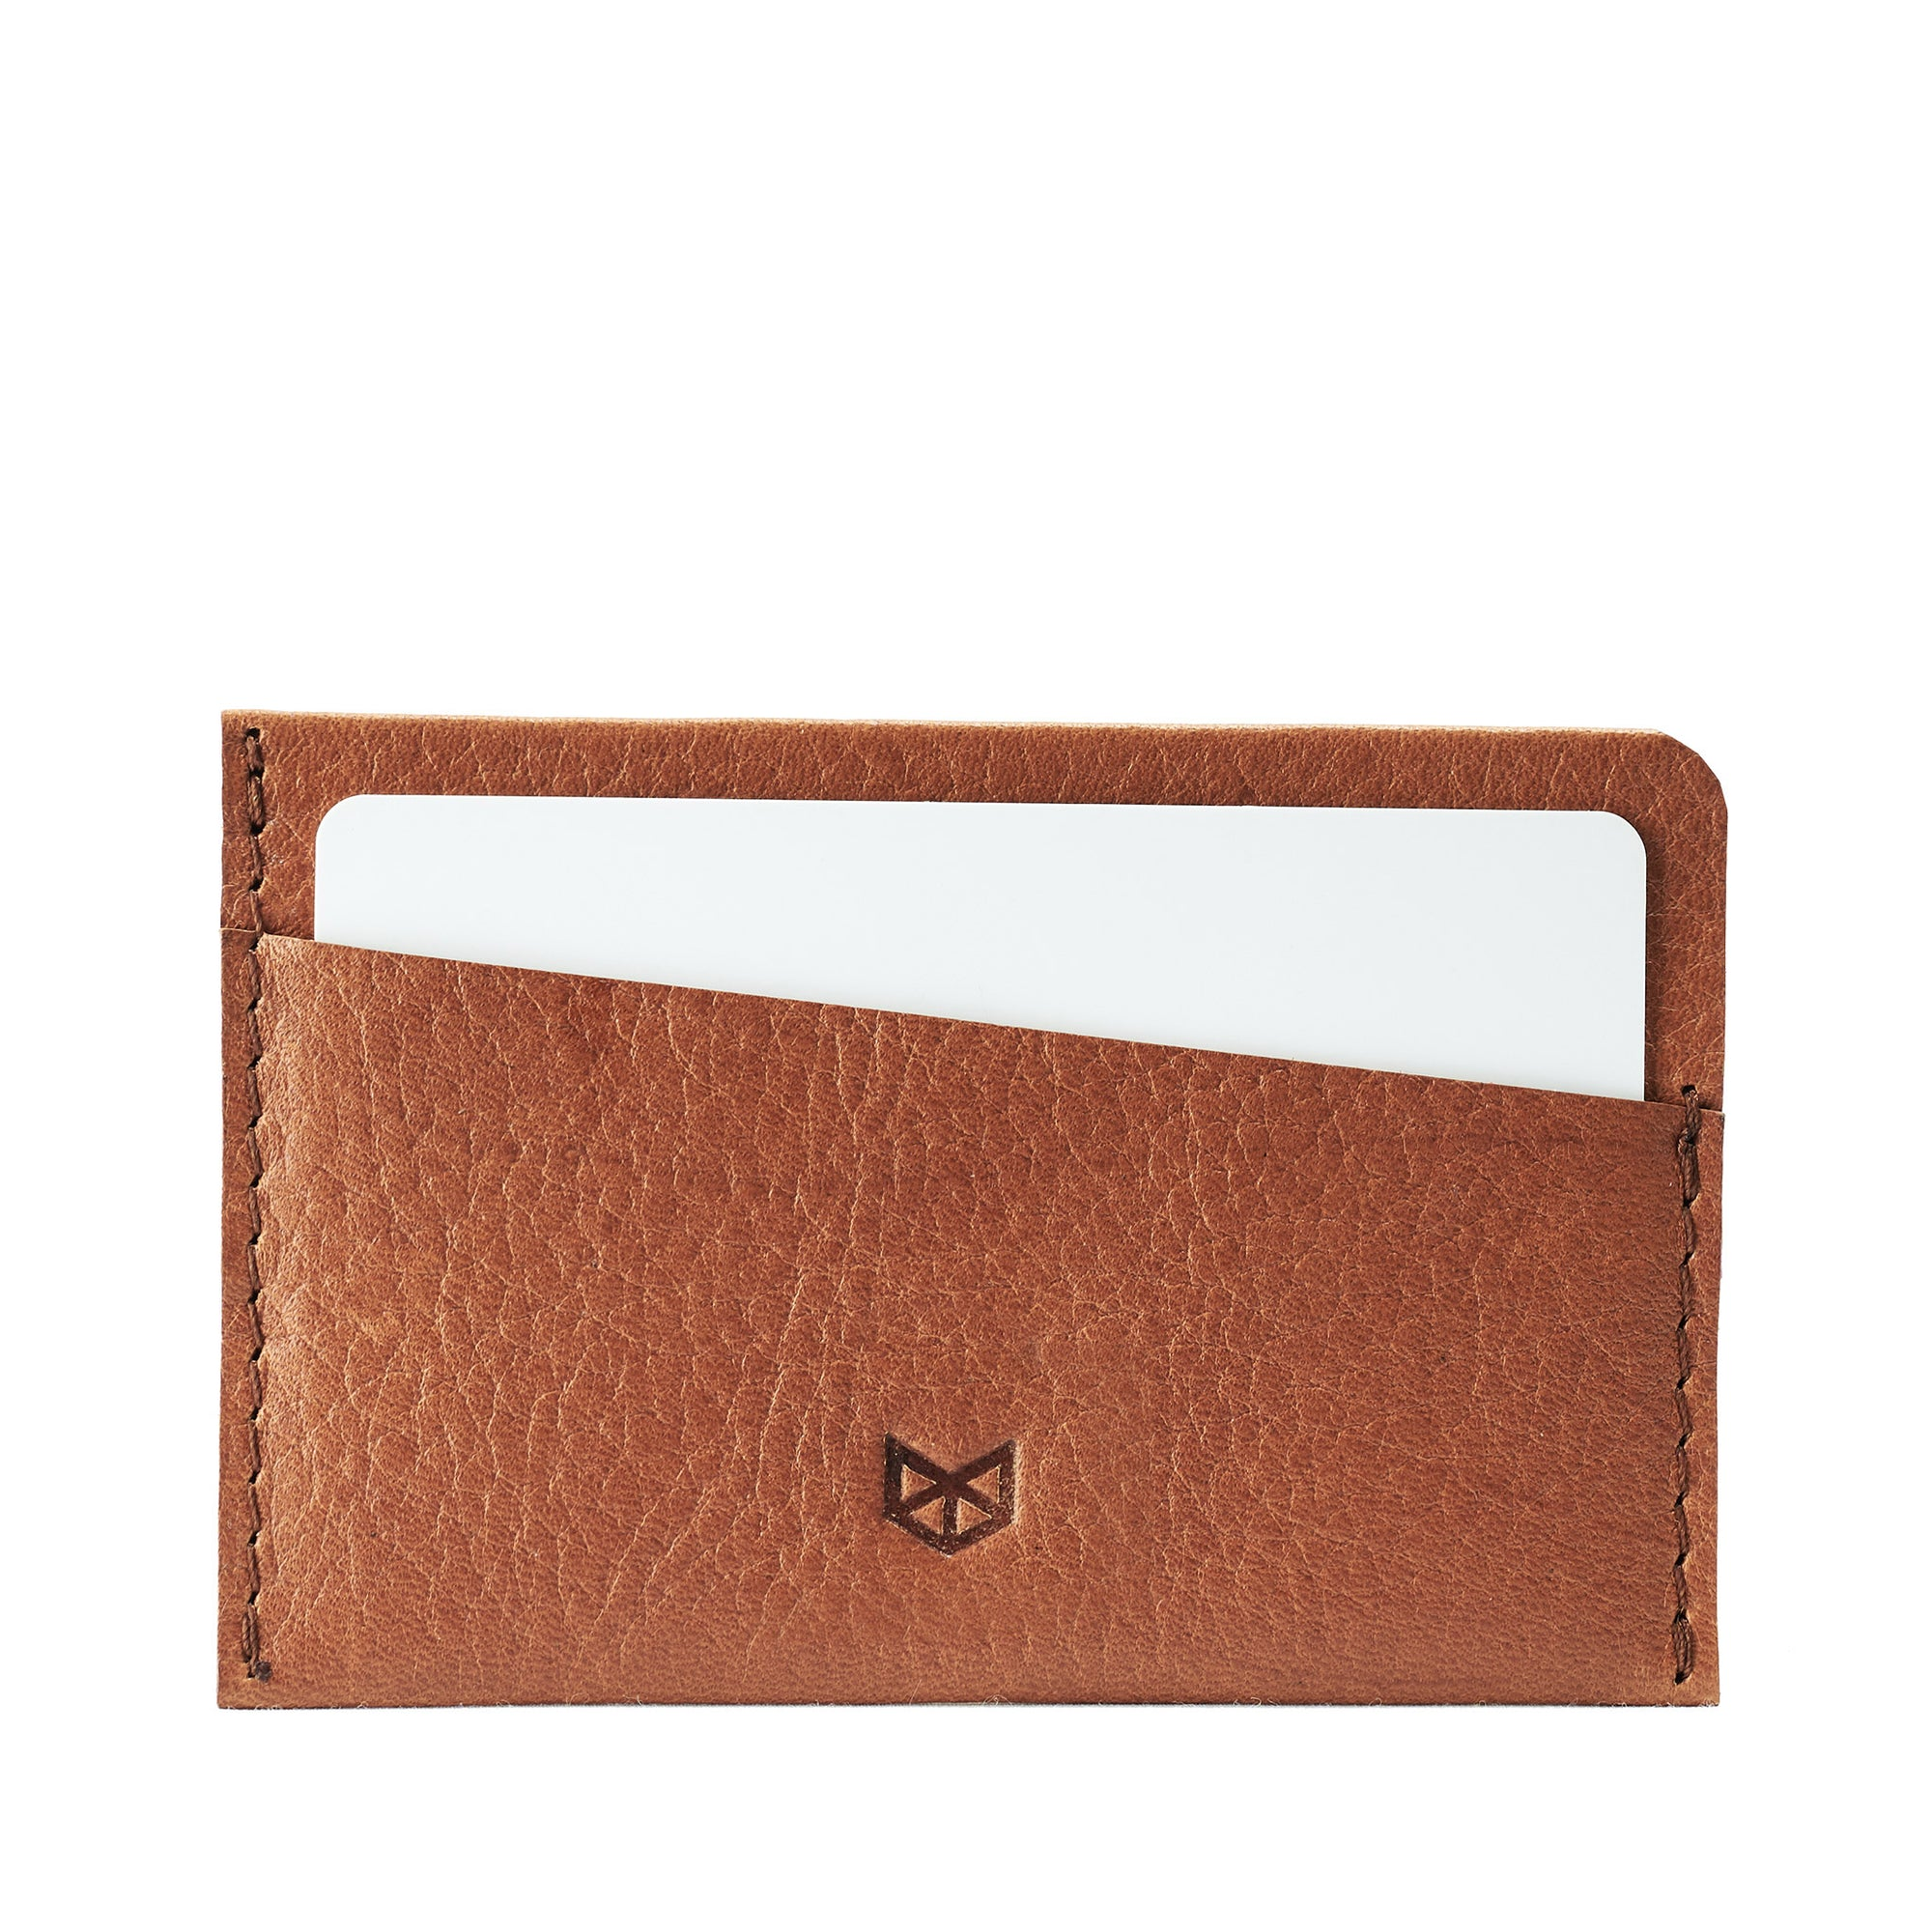 Light Brown card holder for men. Gifts for men, handmade accessories, minimalist designer cards wallet